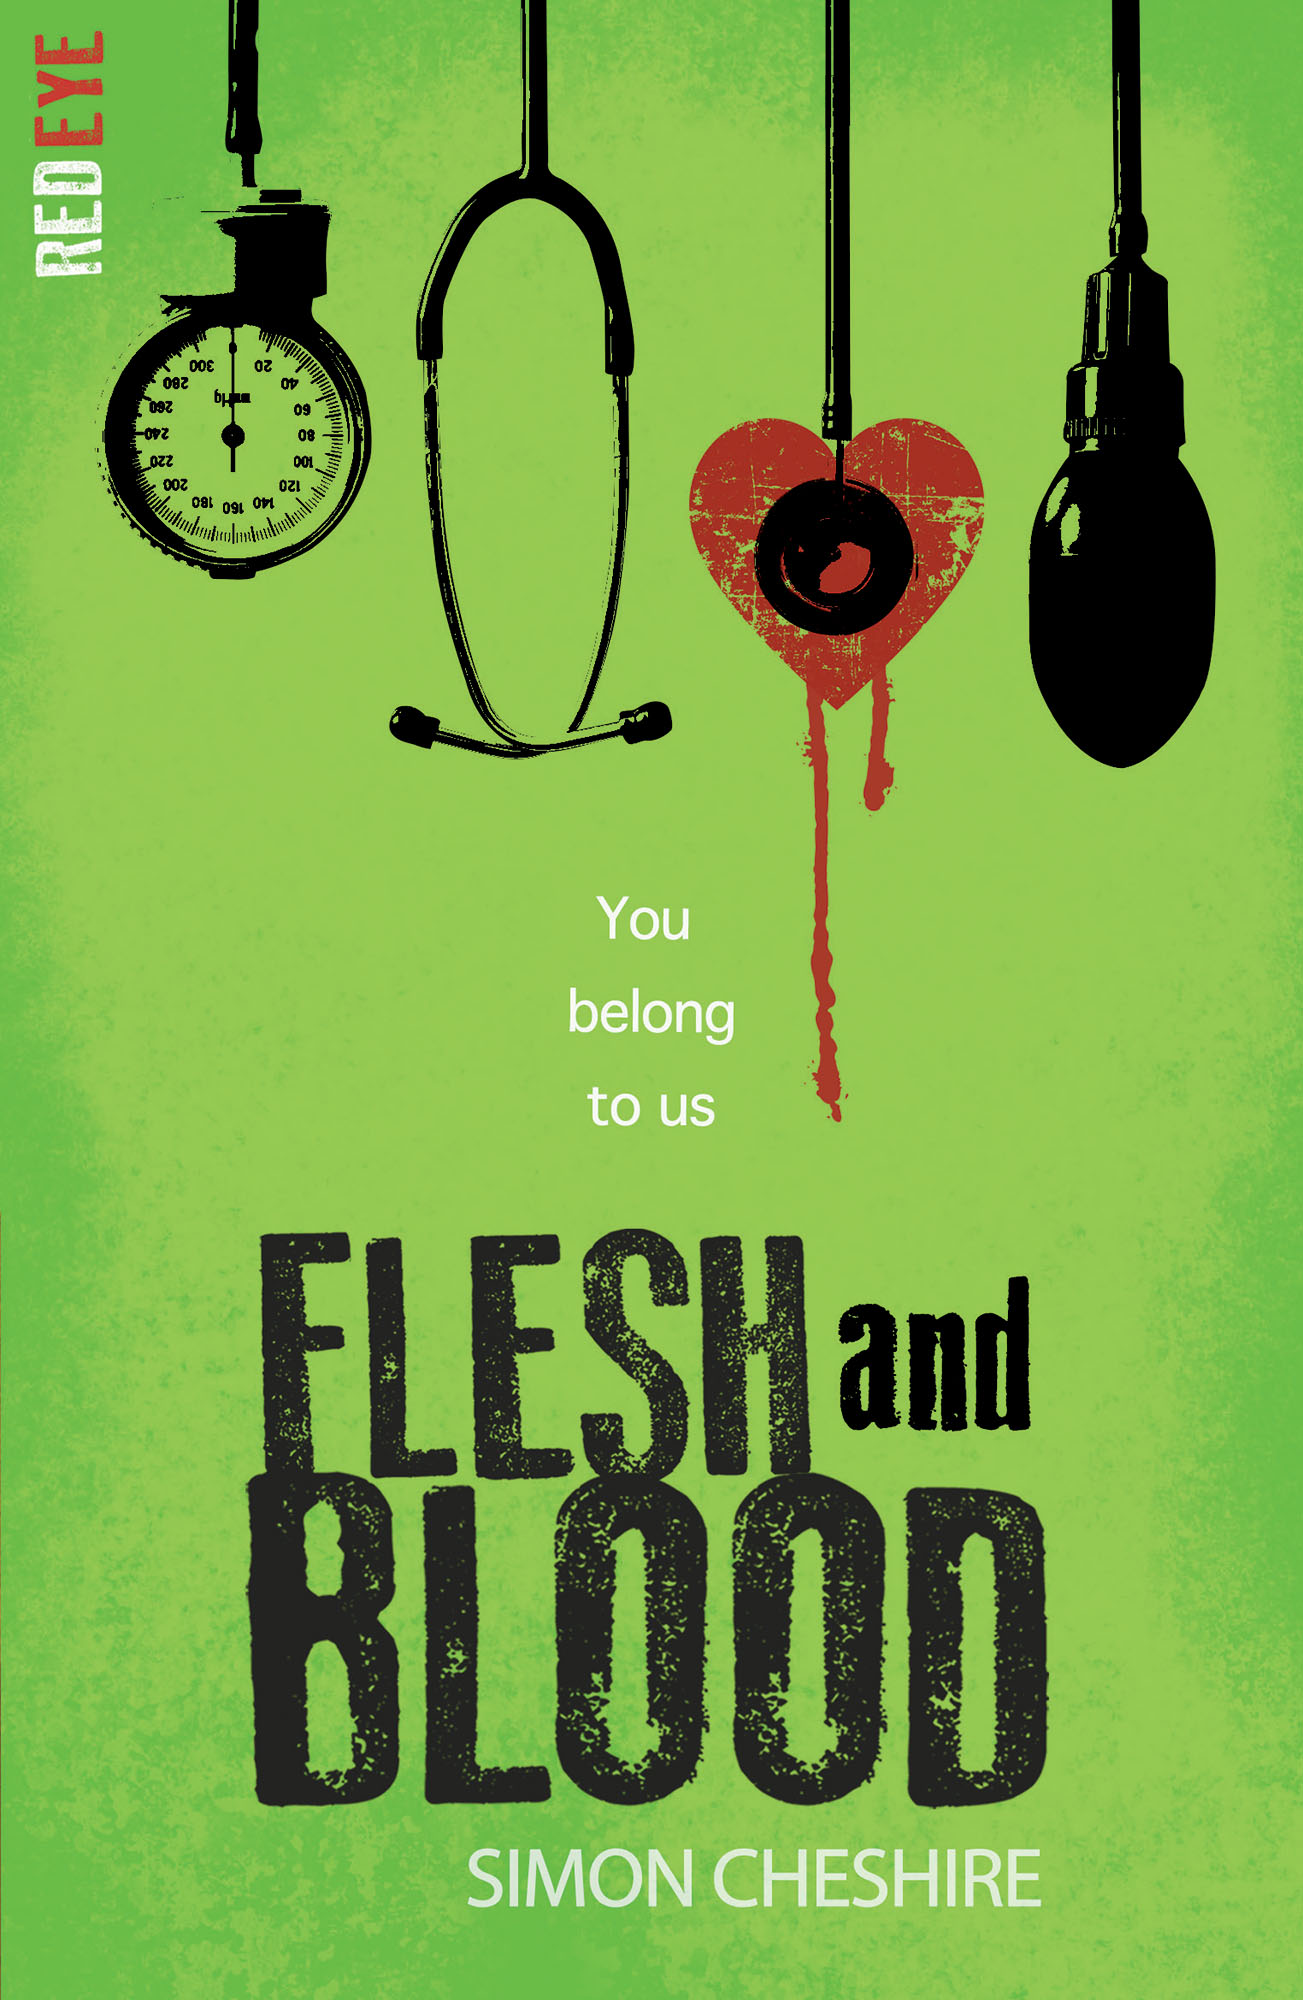 Scary stories and dramatic irony: Blog tour by Flesh and Blood author Simon Cheshire